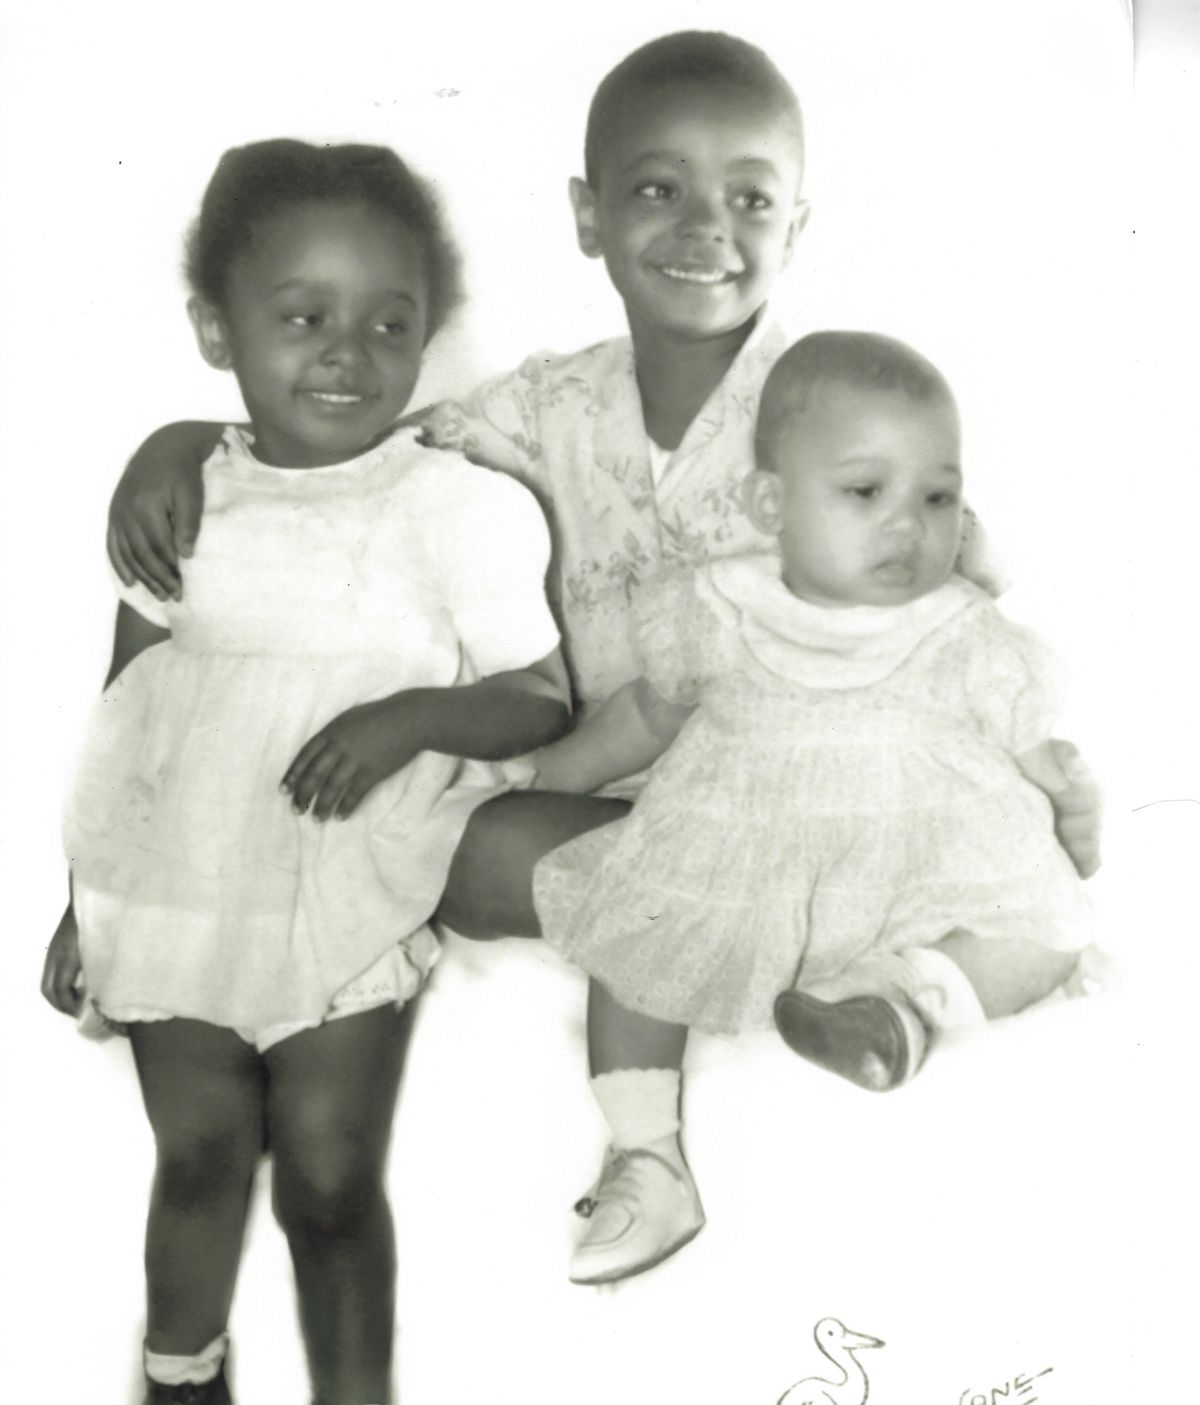 Wilton Gregory, here, with his two siblings Elaine (left) and Claudia, was raised by his mother, Ethel Duncan Gregory, and his grandmother, Etta Mae Duncan, in an apartment complex in South Side Englewood during the 1950's and '60s.